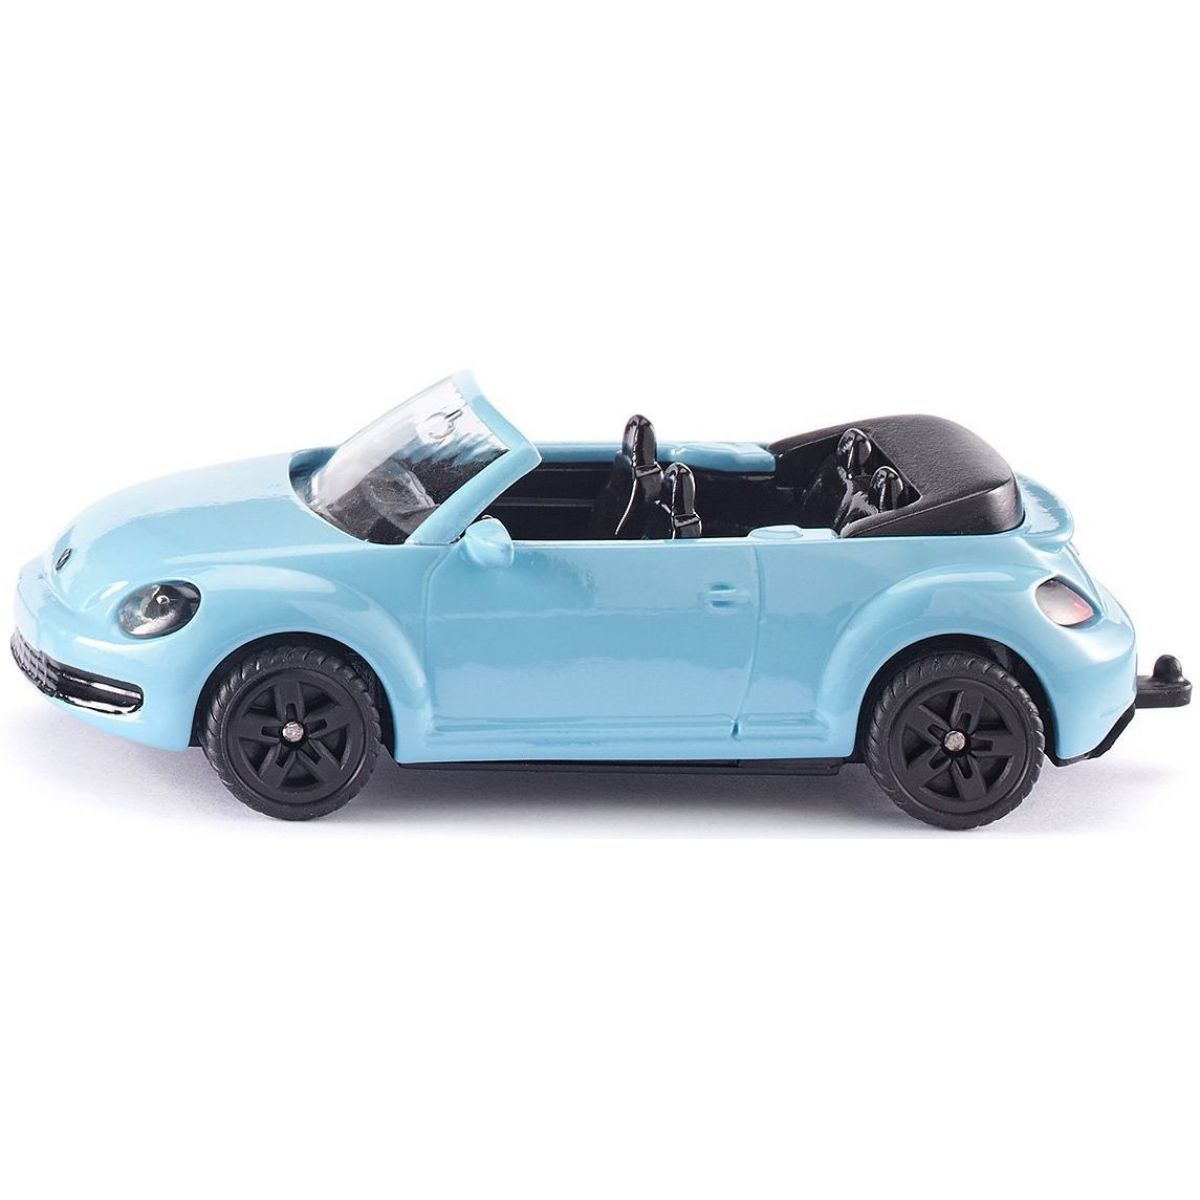 Siku Blister VW The Beetle Cabrio